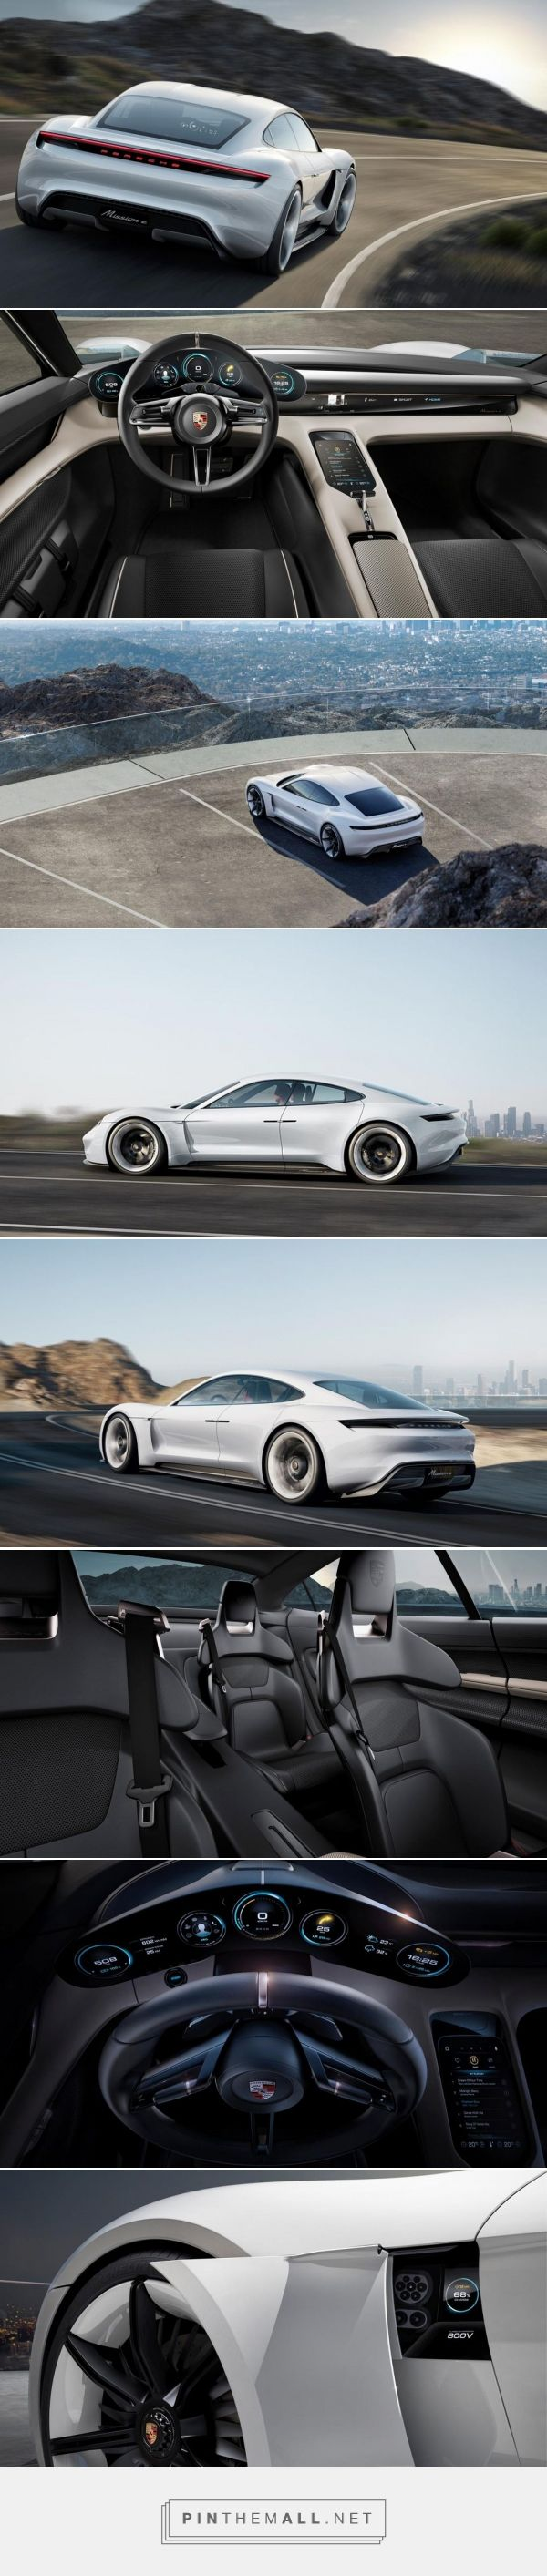 Porsche Mission E announced, an electric sports sedan that charges faster than a Tesla | The Verge - created via http://pinthemall.net